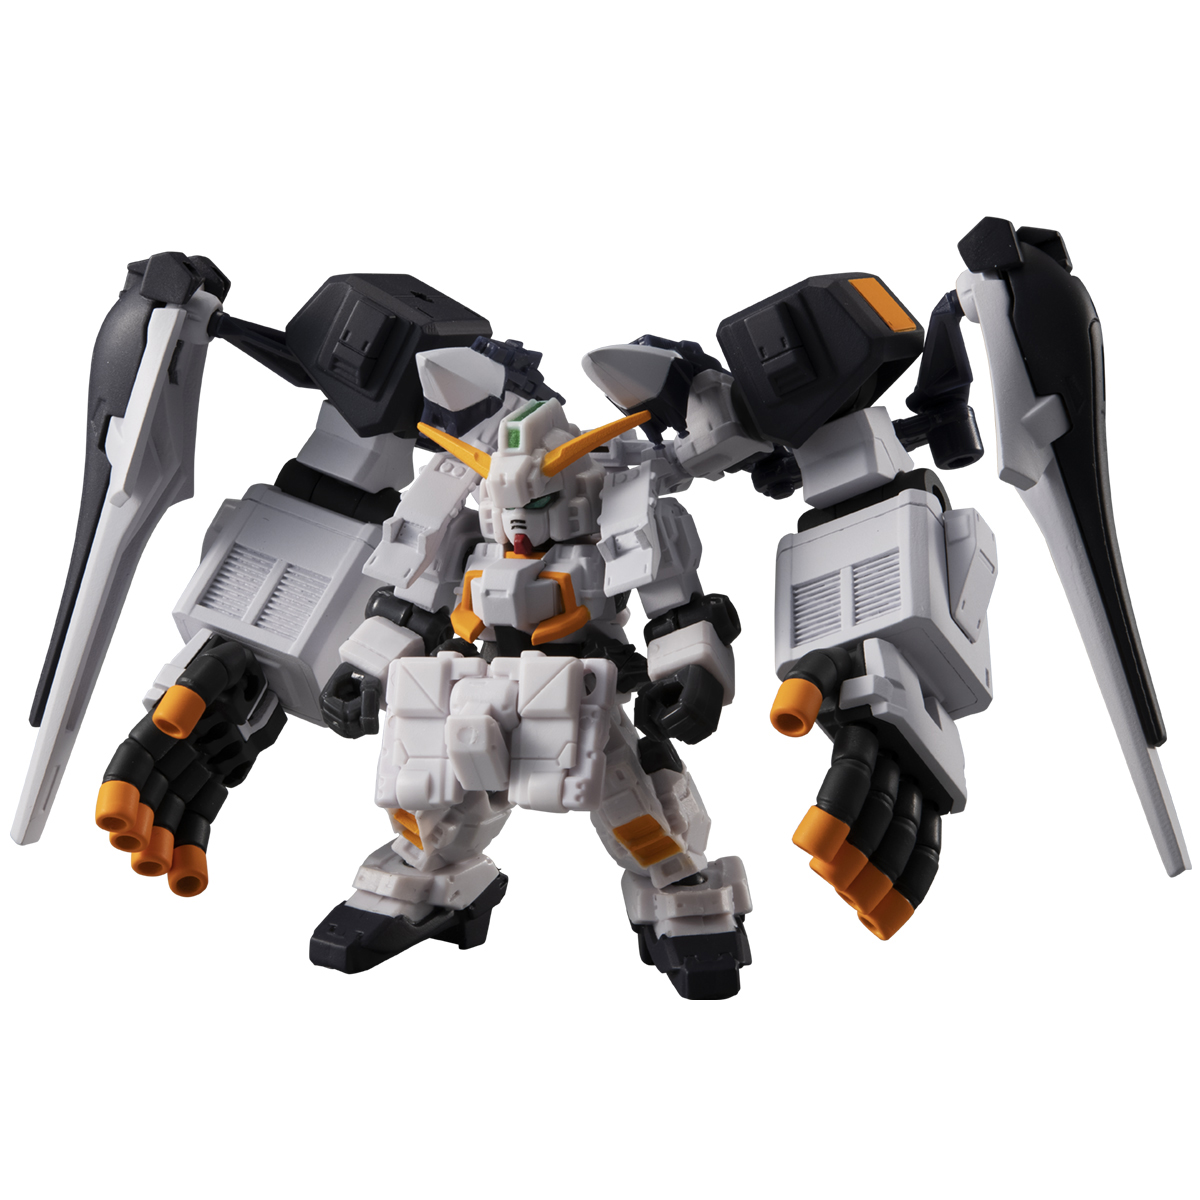 MOBILE SUIT ENSEMBLE EX23 GIGANTIC ARM UNIT SET